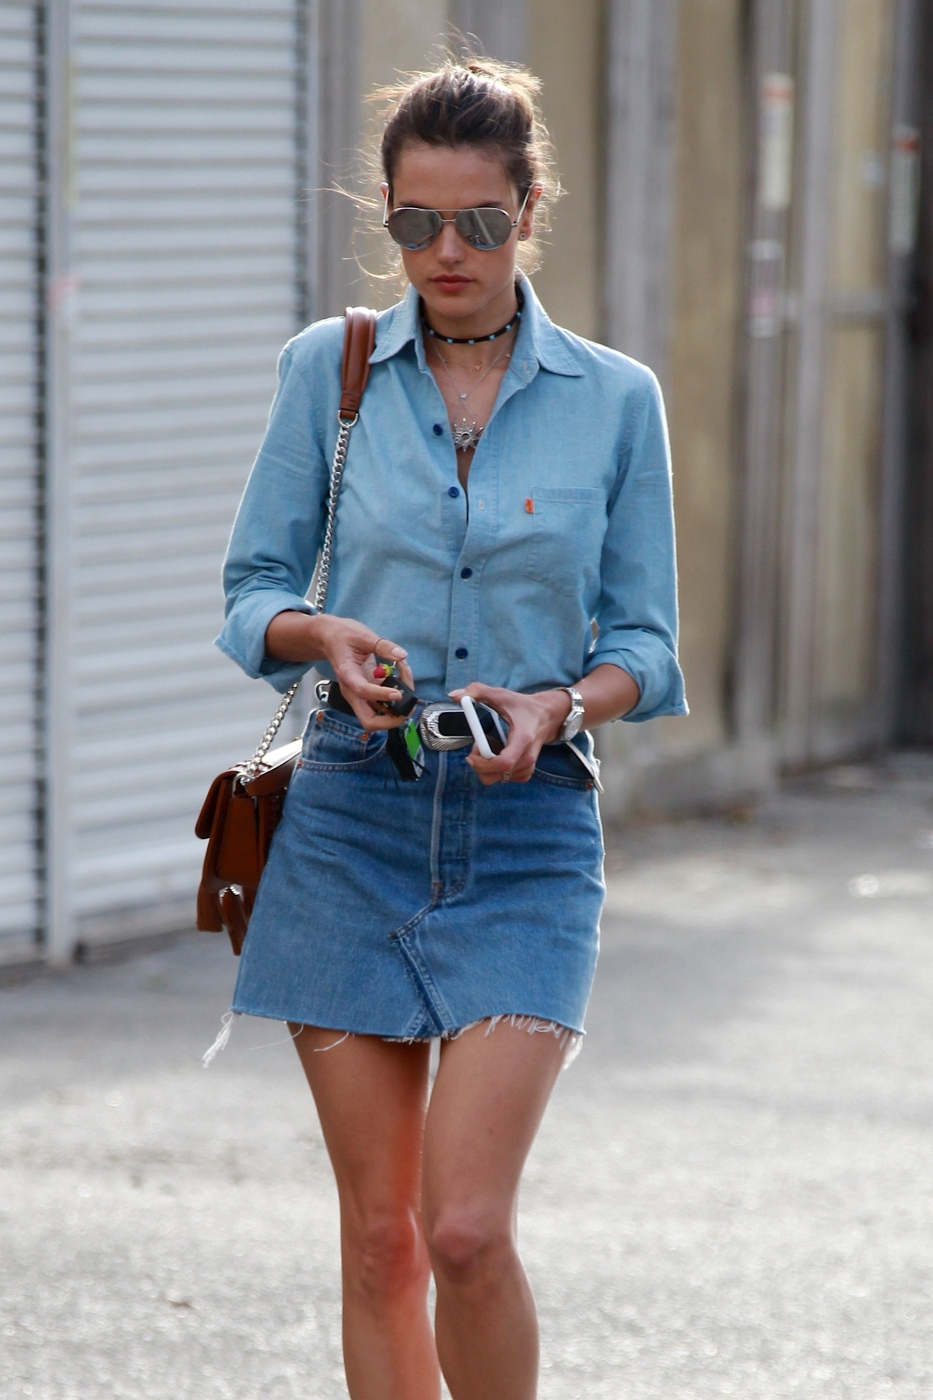 Alessandra Ambrosio's double denim summer outfit